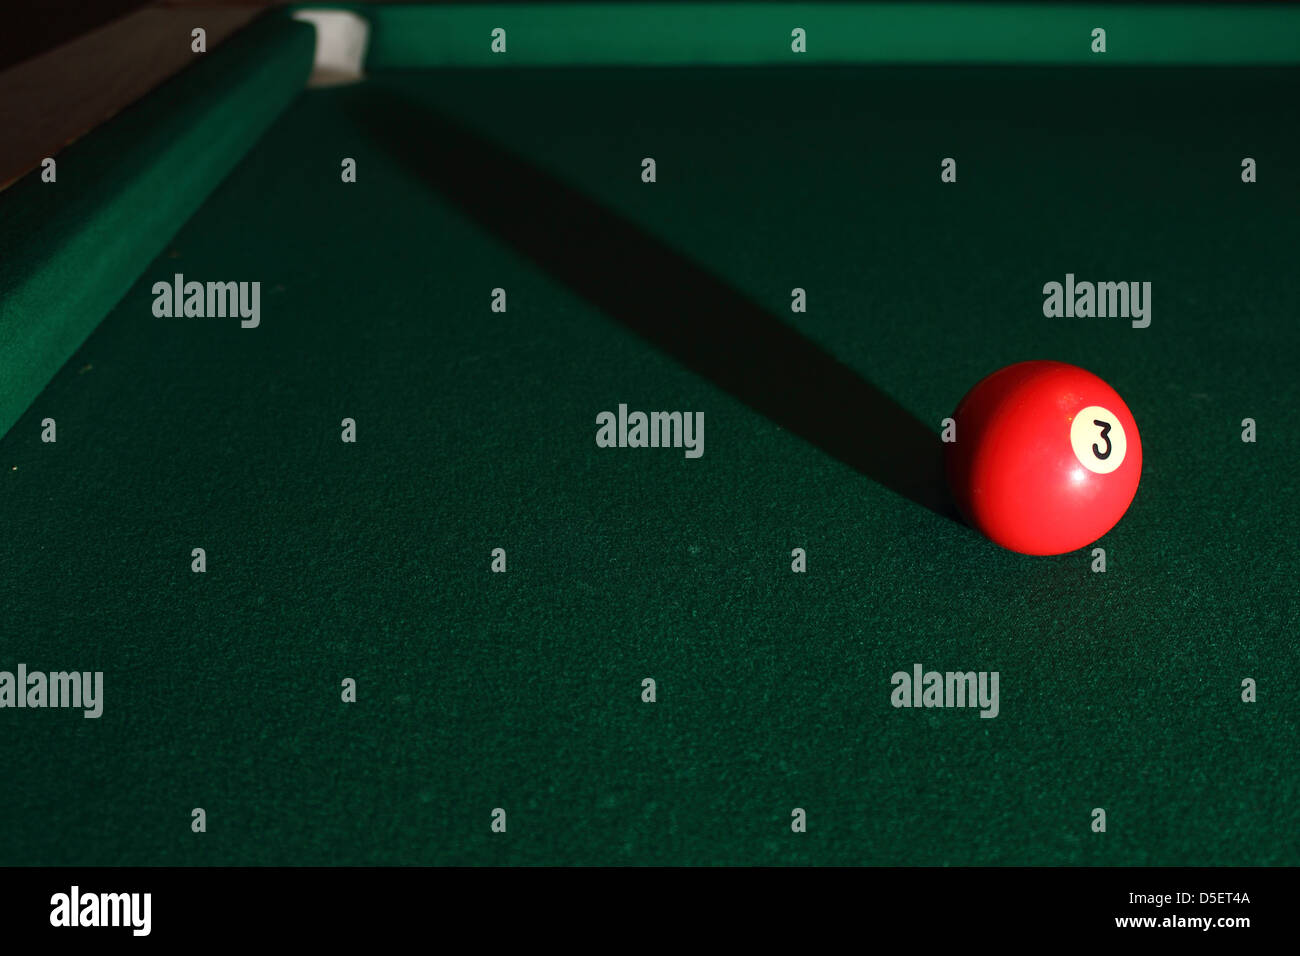 Billiards Pool Table With Balls Shadow And Light Stock